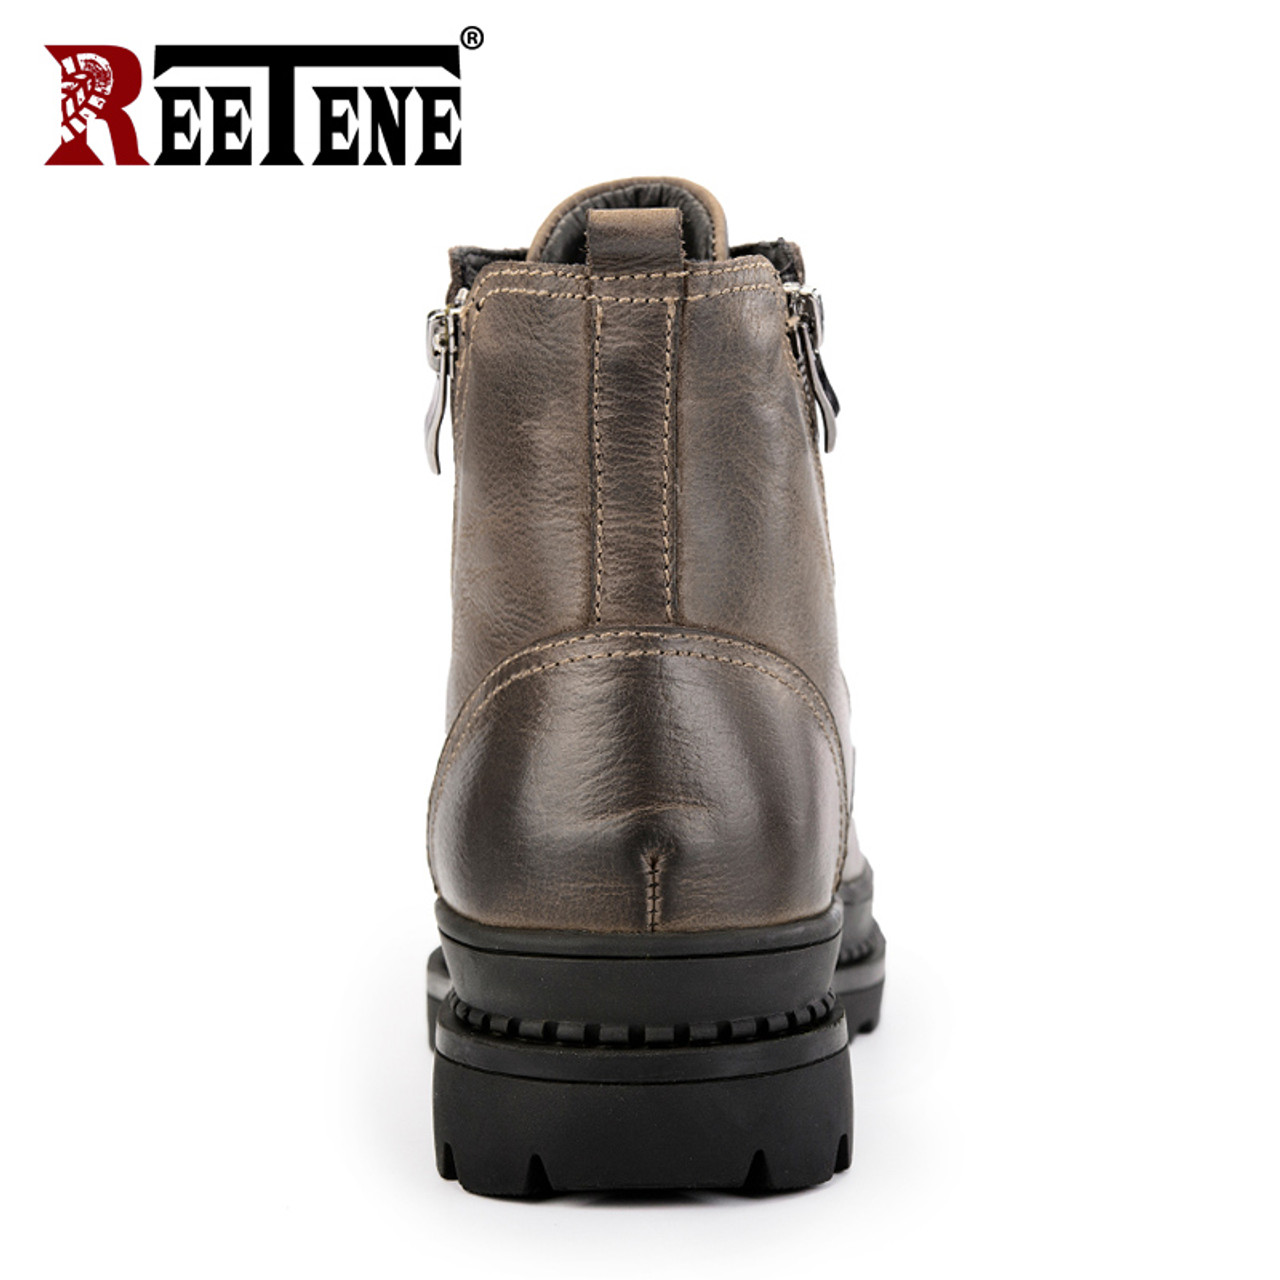 30b2d50fd991f ... REETENE Genuine Leather Men'S Boots High Quality Leather Men Boots Plush  2018 Zipper Winter Ankle Boots ...